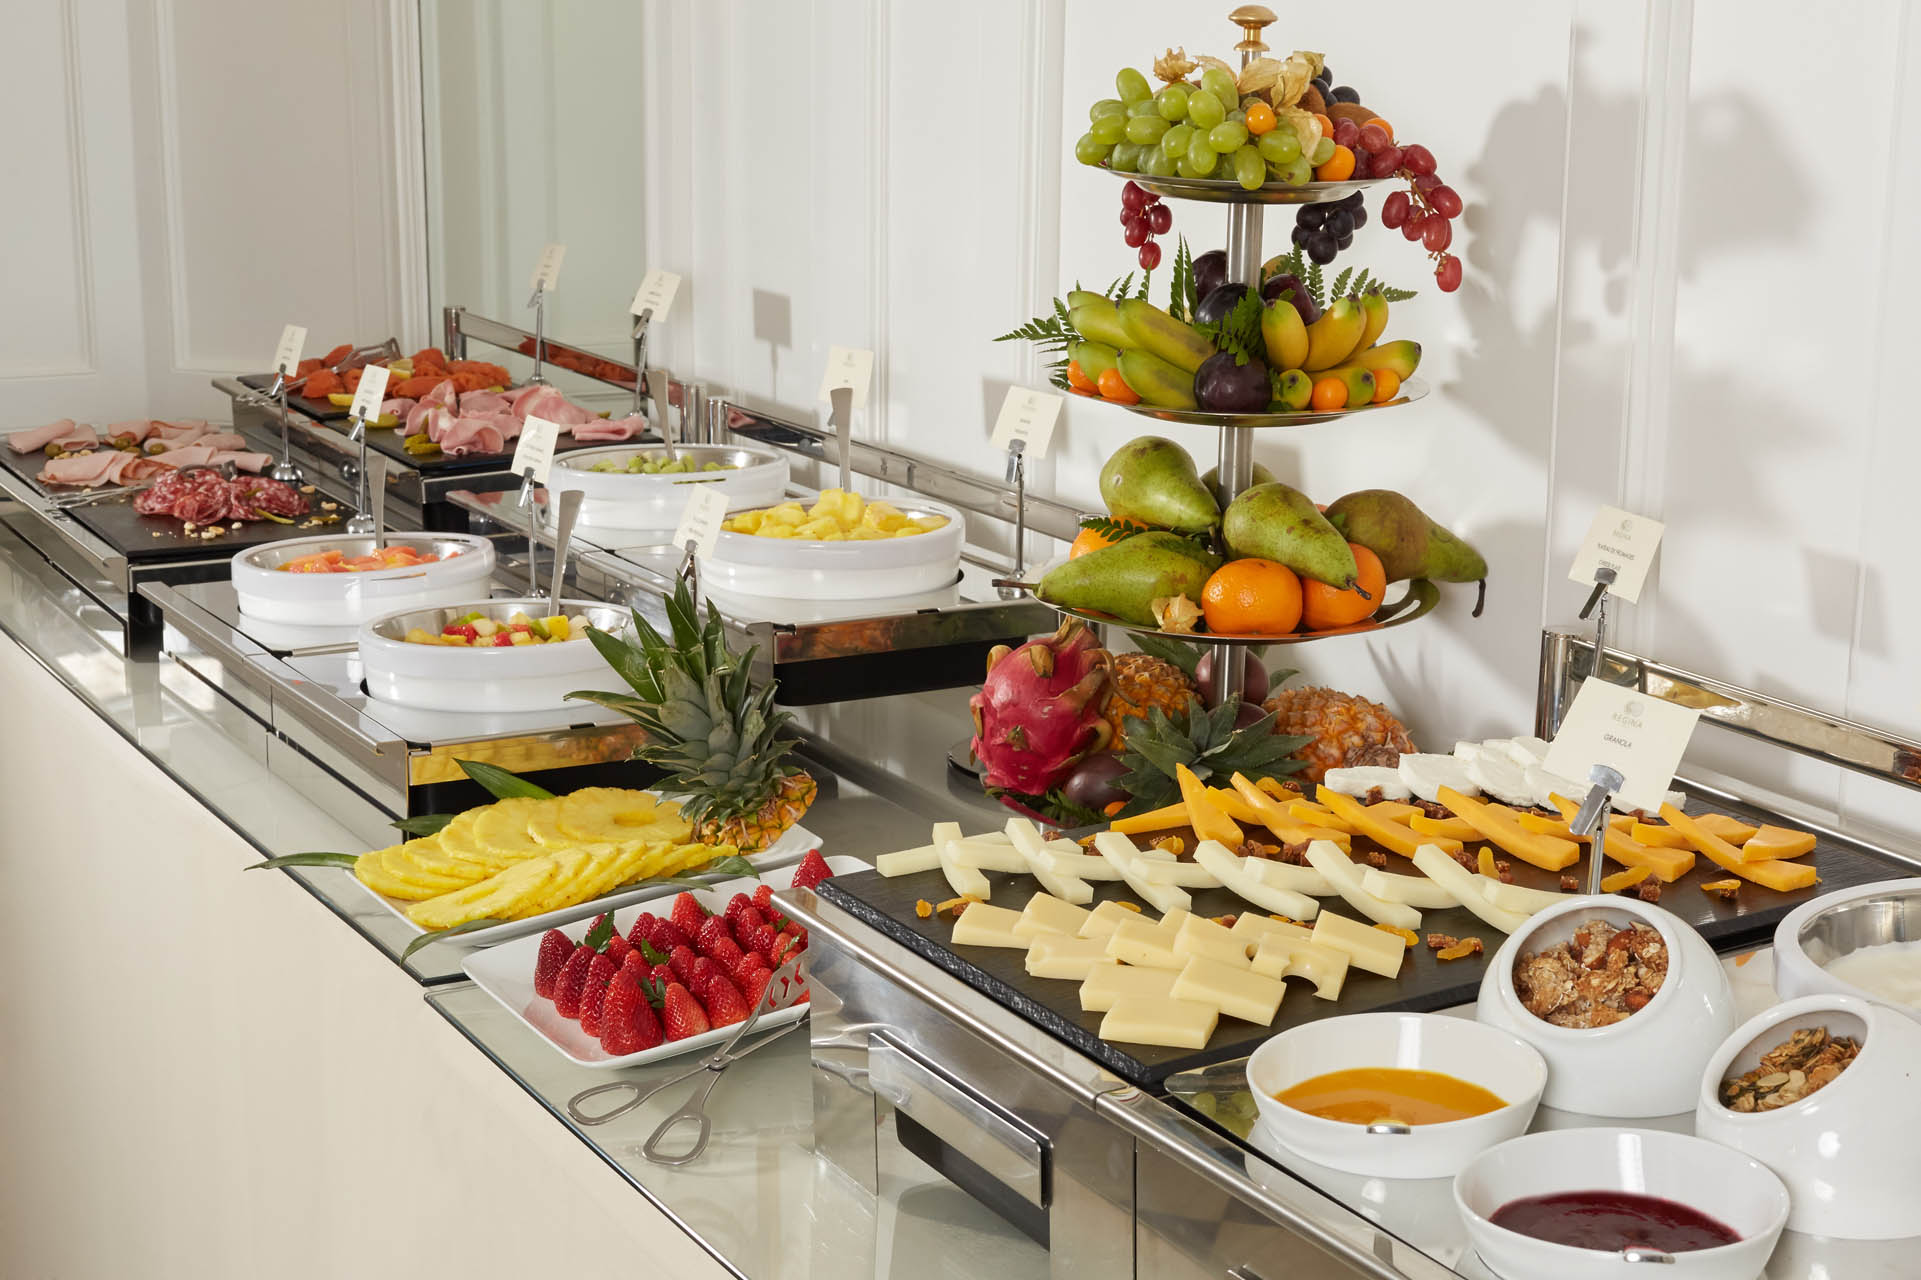 235/Petit dejeuner/Breakfast Room - Buffet 4 - CHotel Regina Paris.jpg